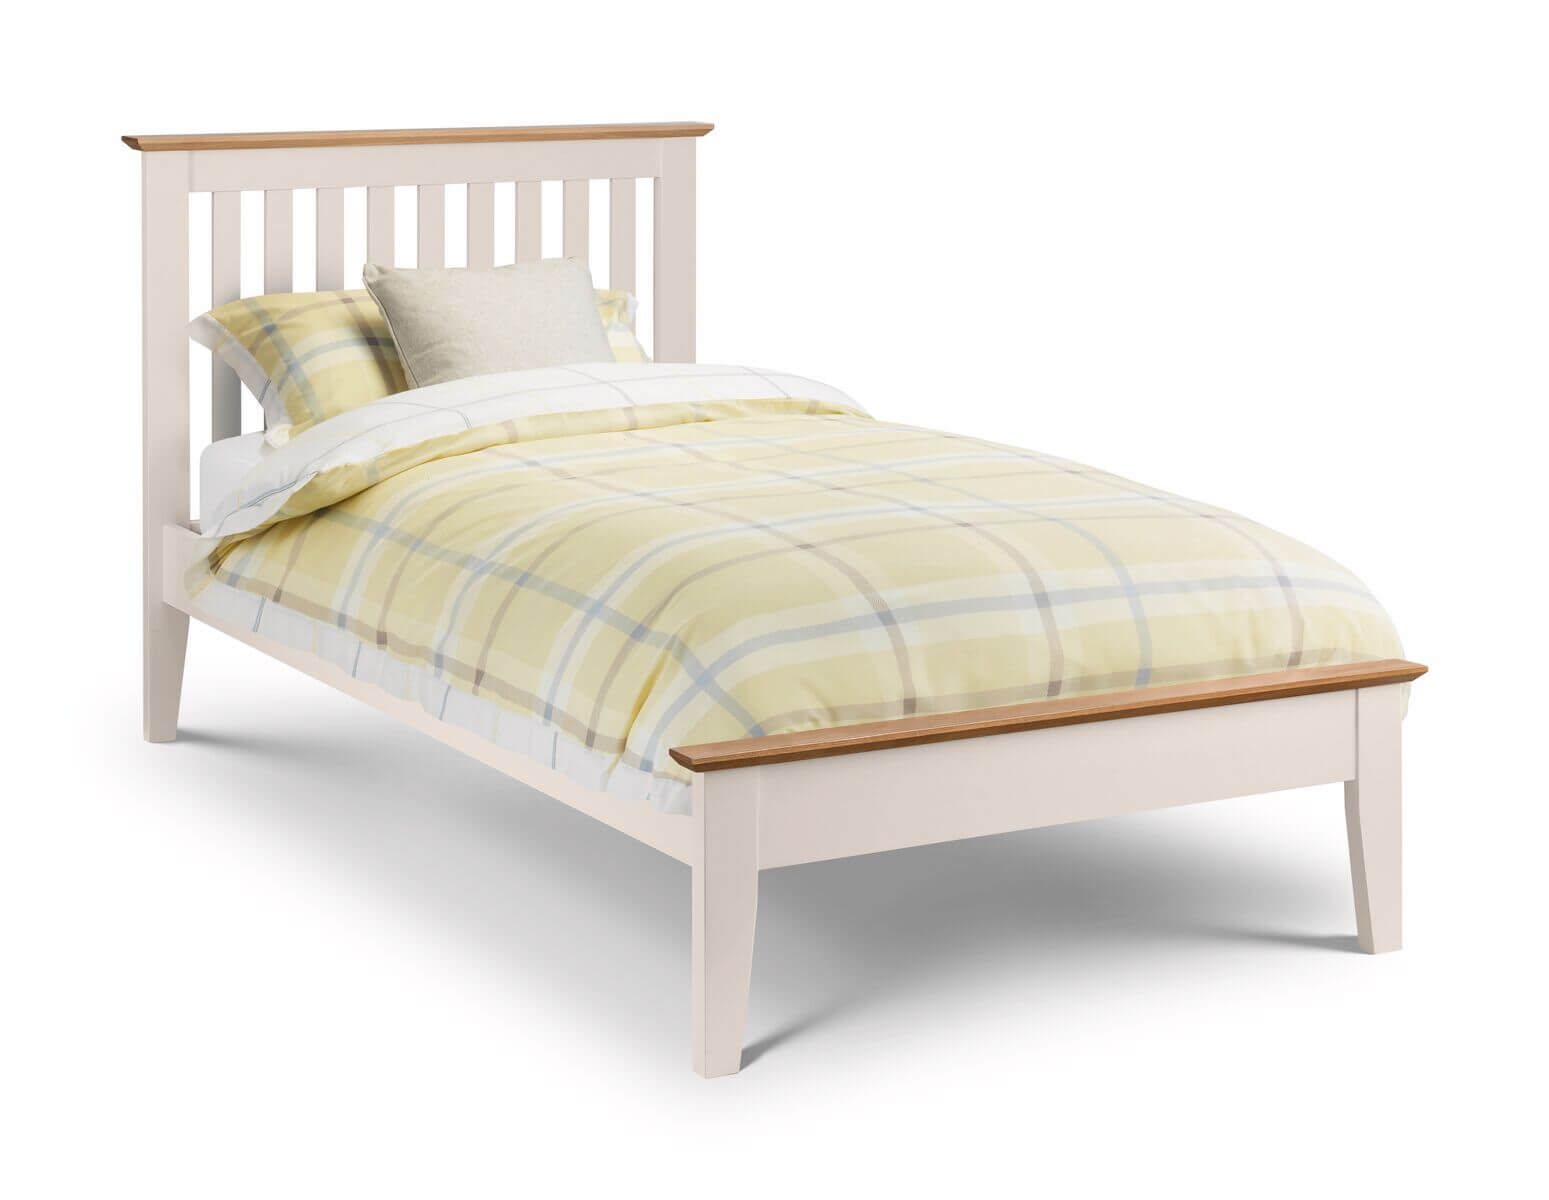 Salerno Bed Two Tone 90cm